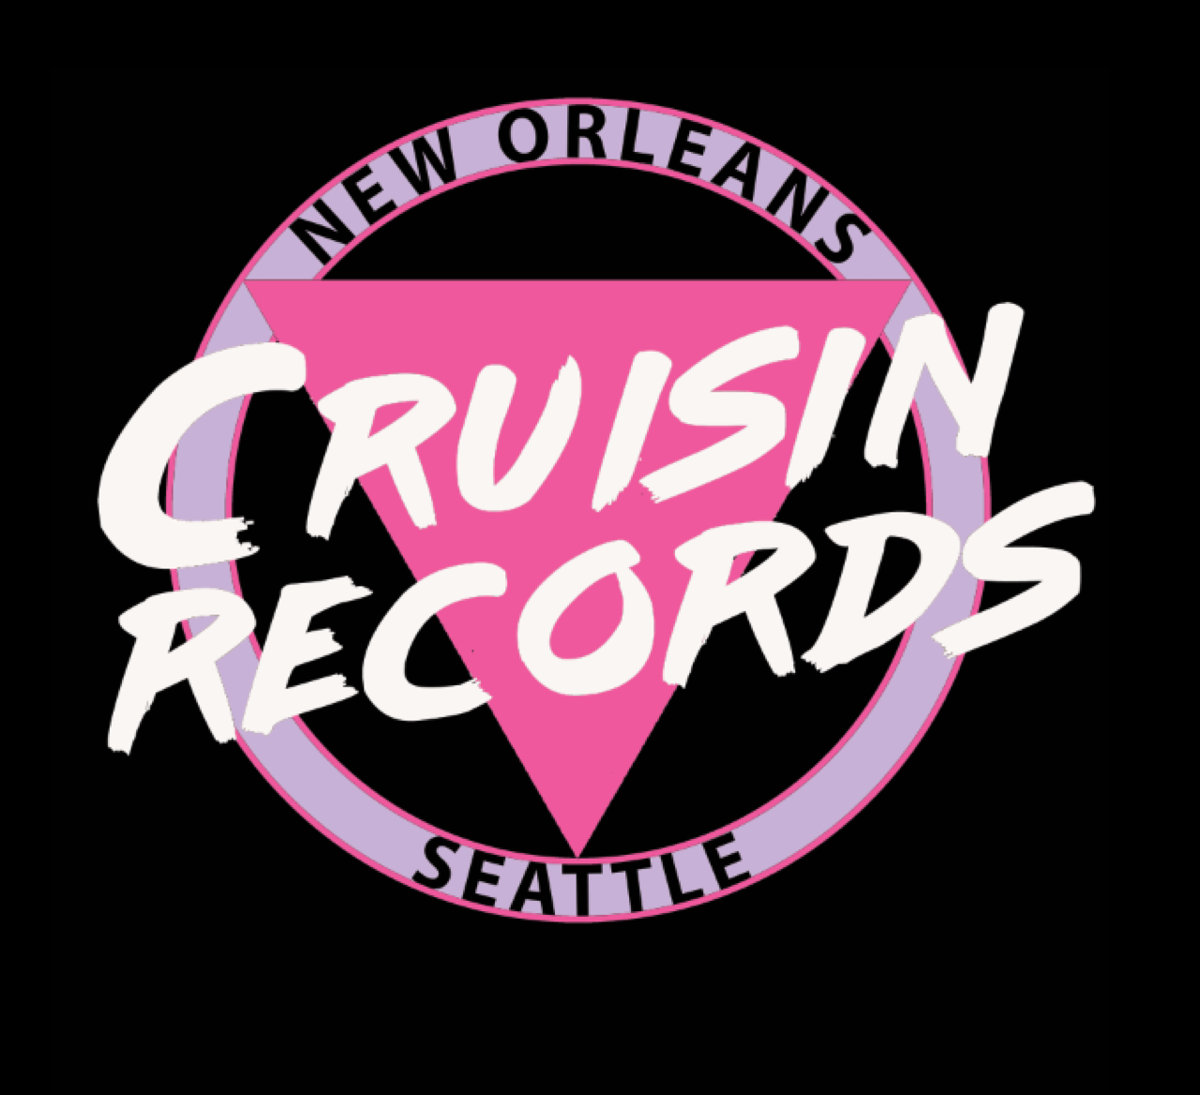 Cruisin Records - EXPLICITLY EXPICIT QUEEr record label